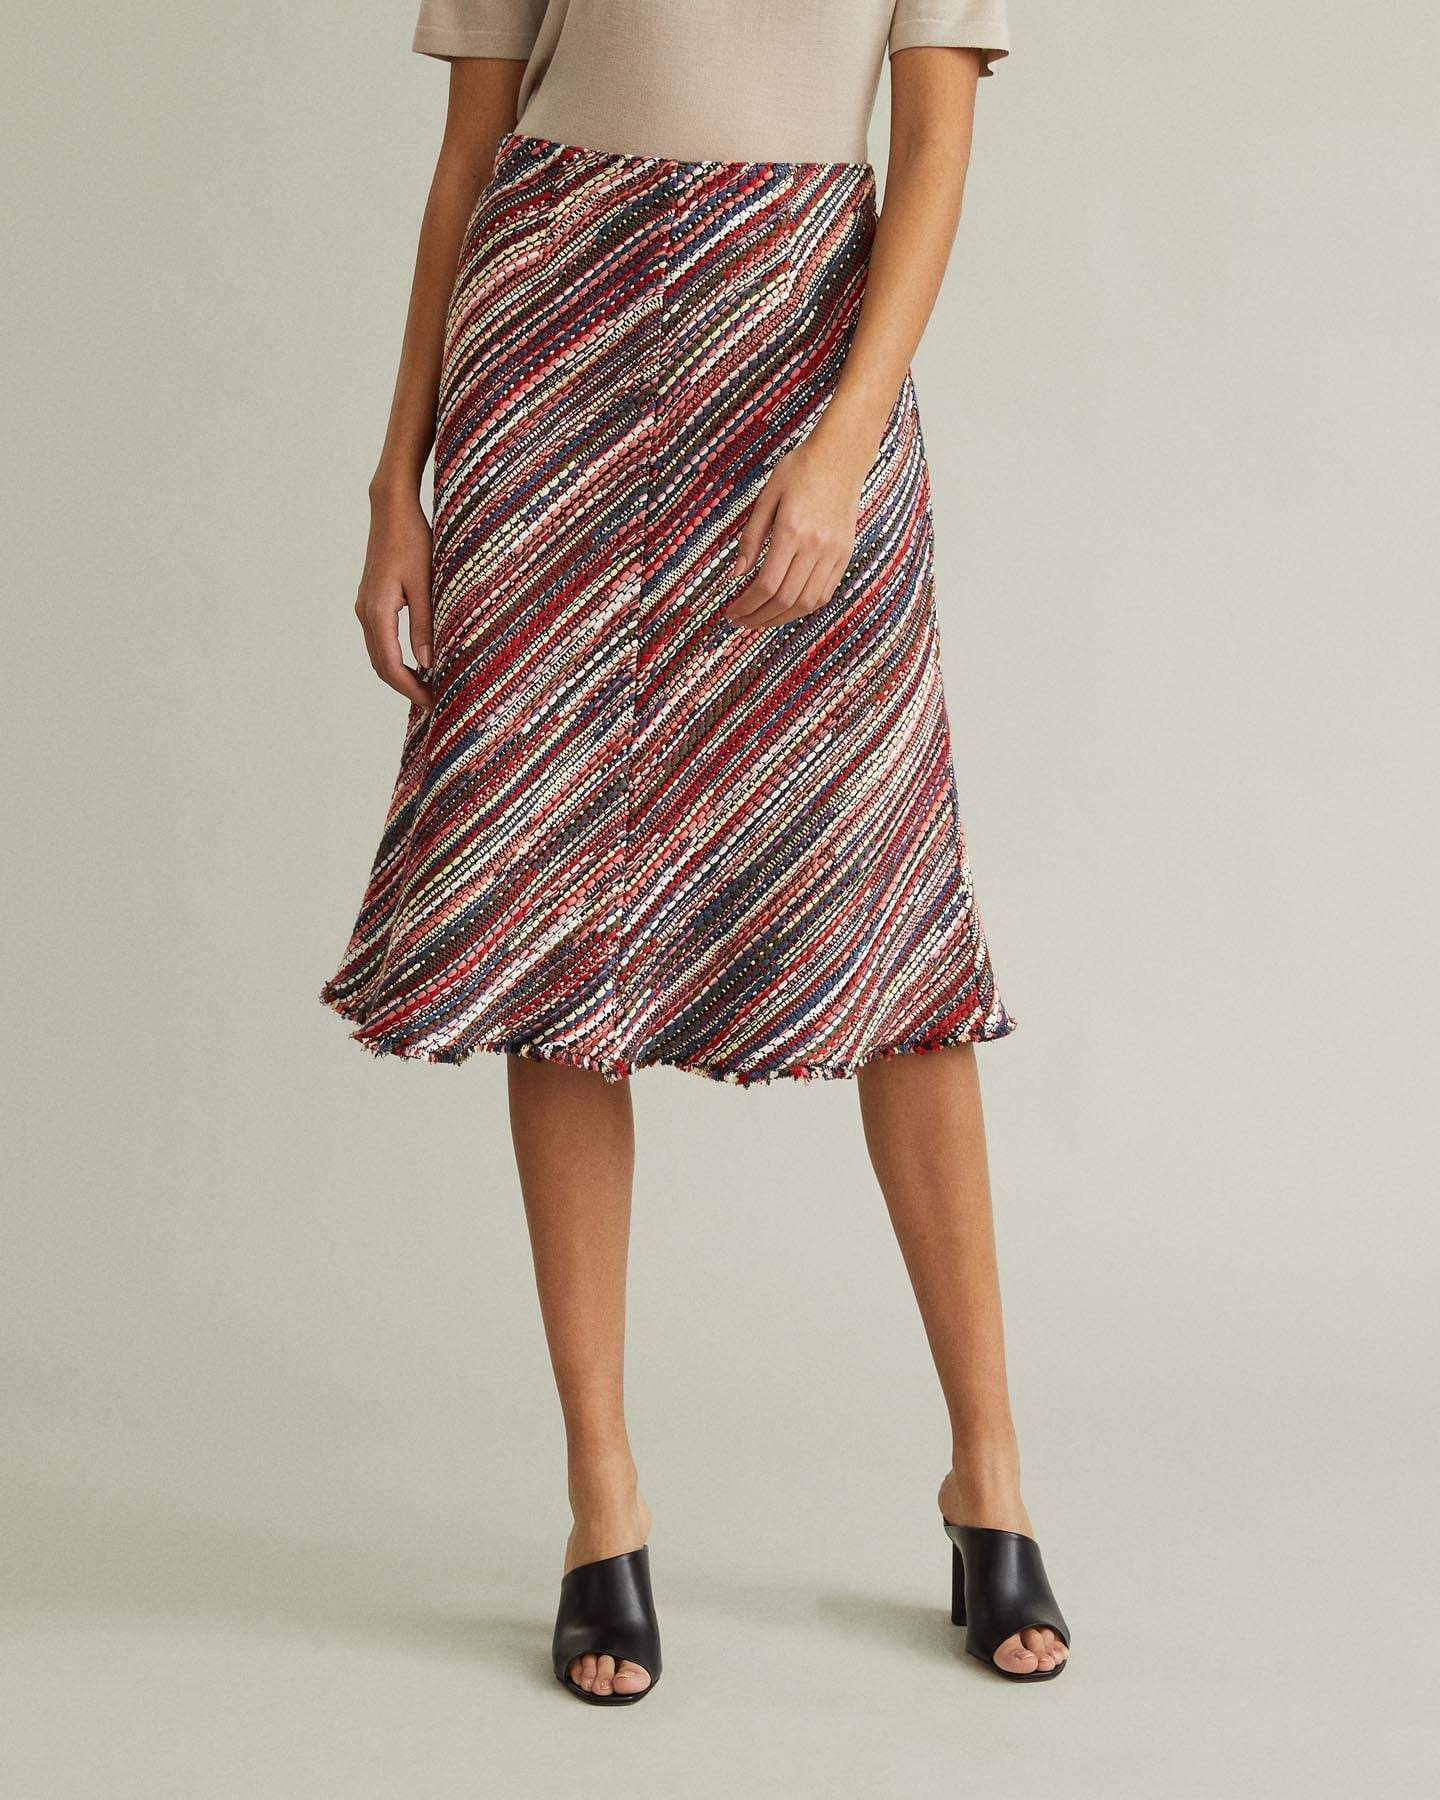 /products/holga-multicolored-woven-midi-skirt